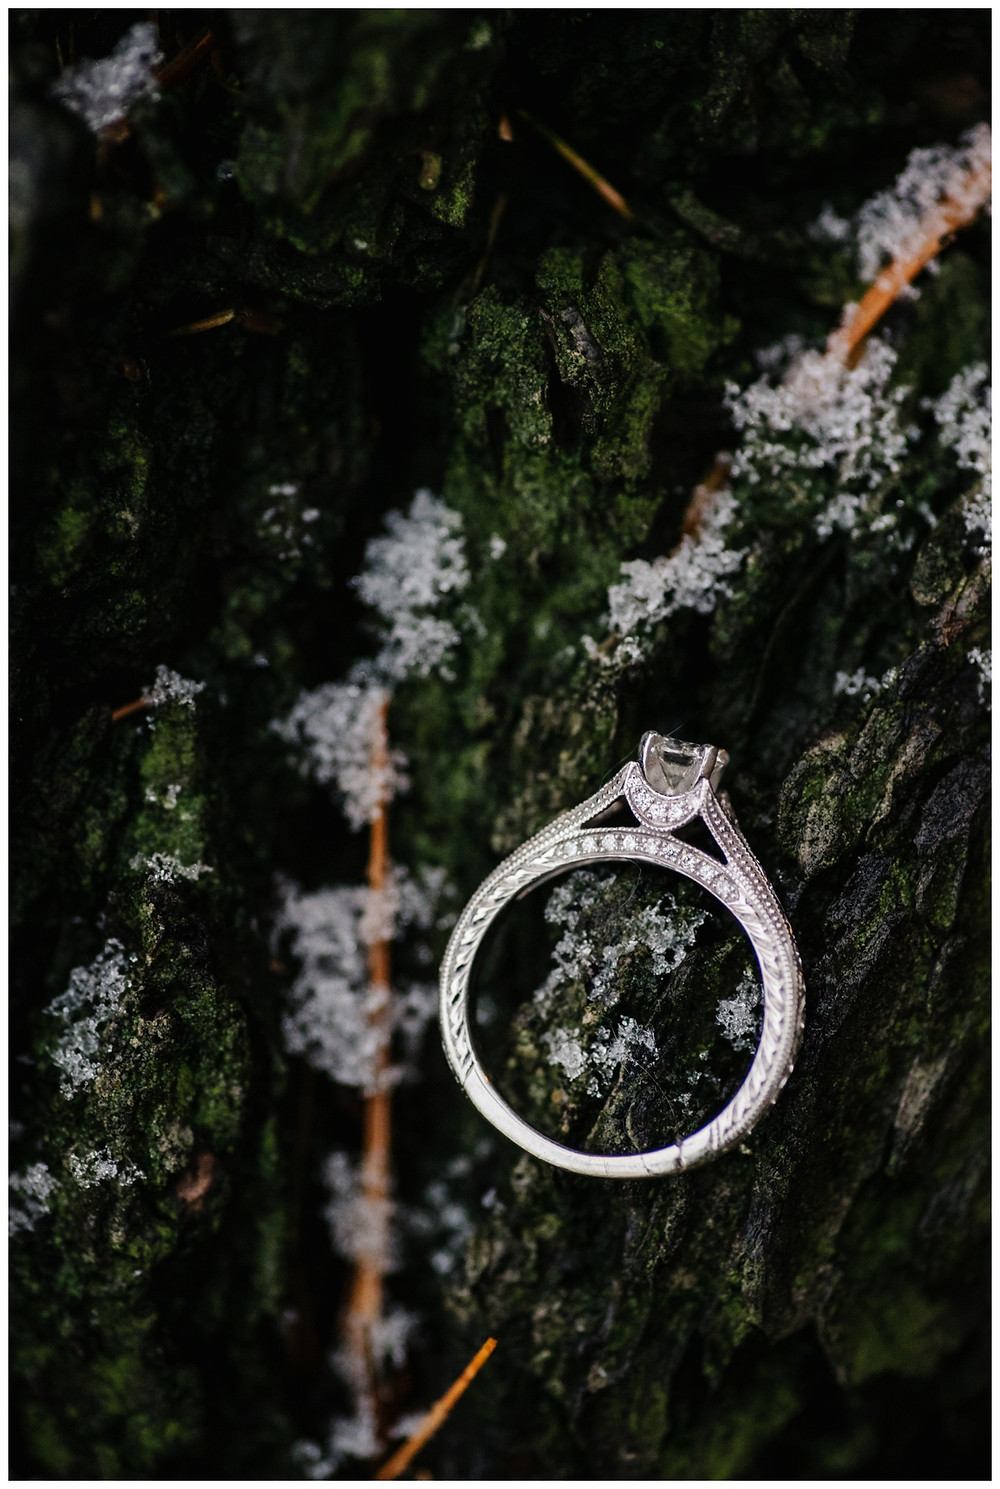 engagement-rig-in-snow-and-moss-at-snowy-sheboygan-engagement-session-by-green-bay-wedding-photographer-kyra-rane-photography